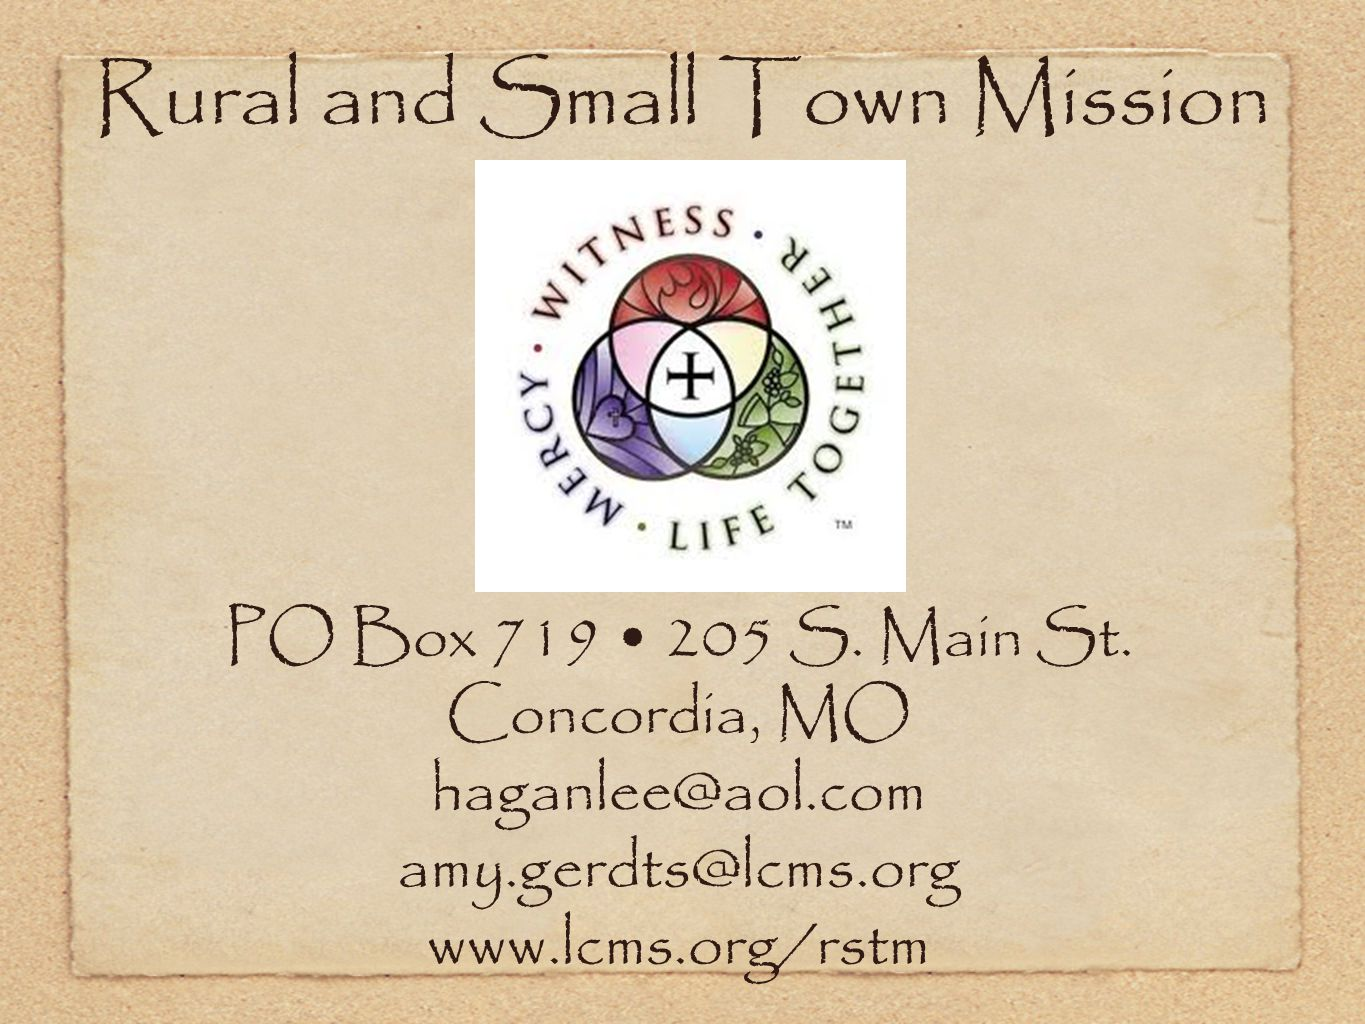 Rural and Small Town Mission PO Box 719 205 S. Main St.